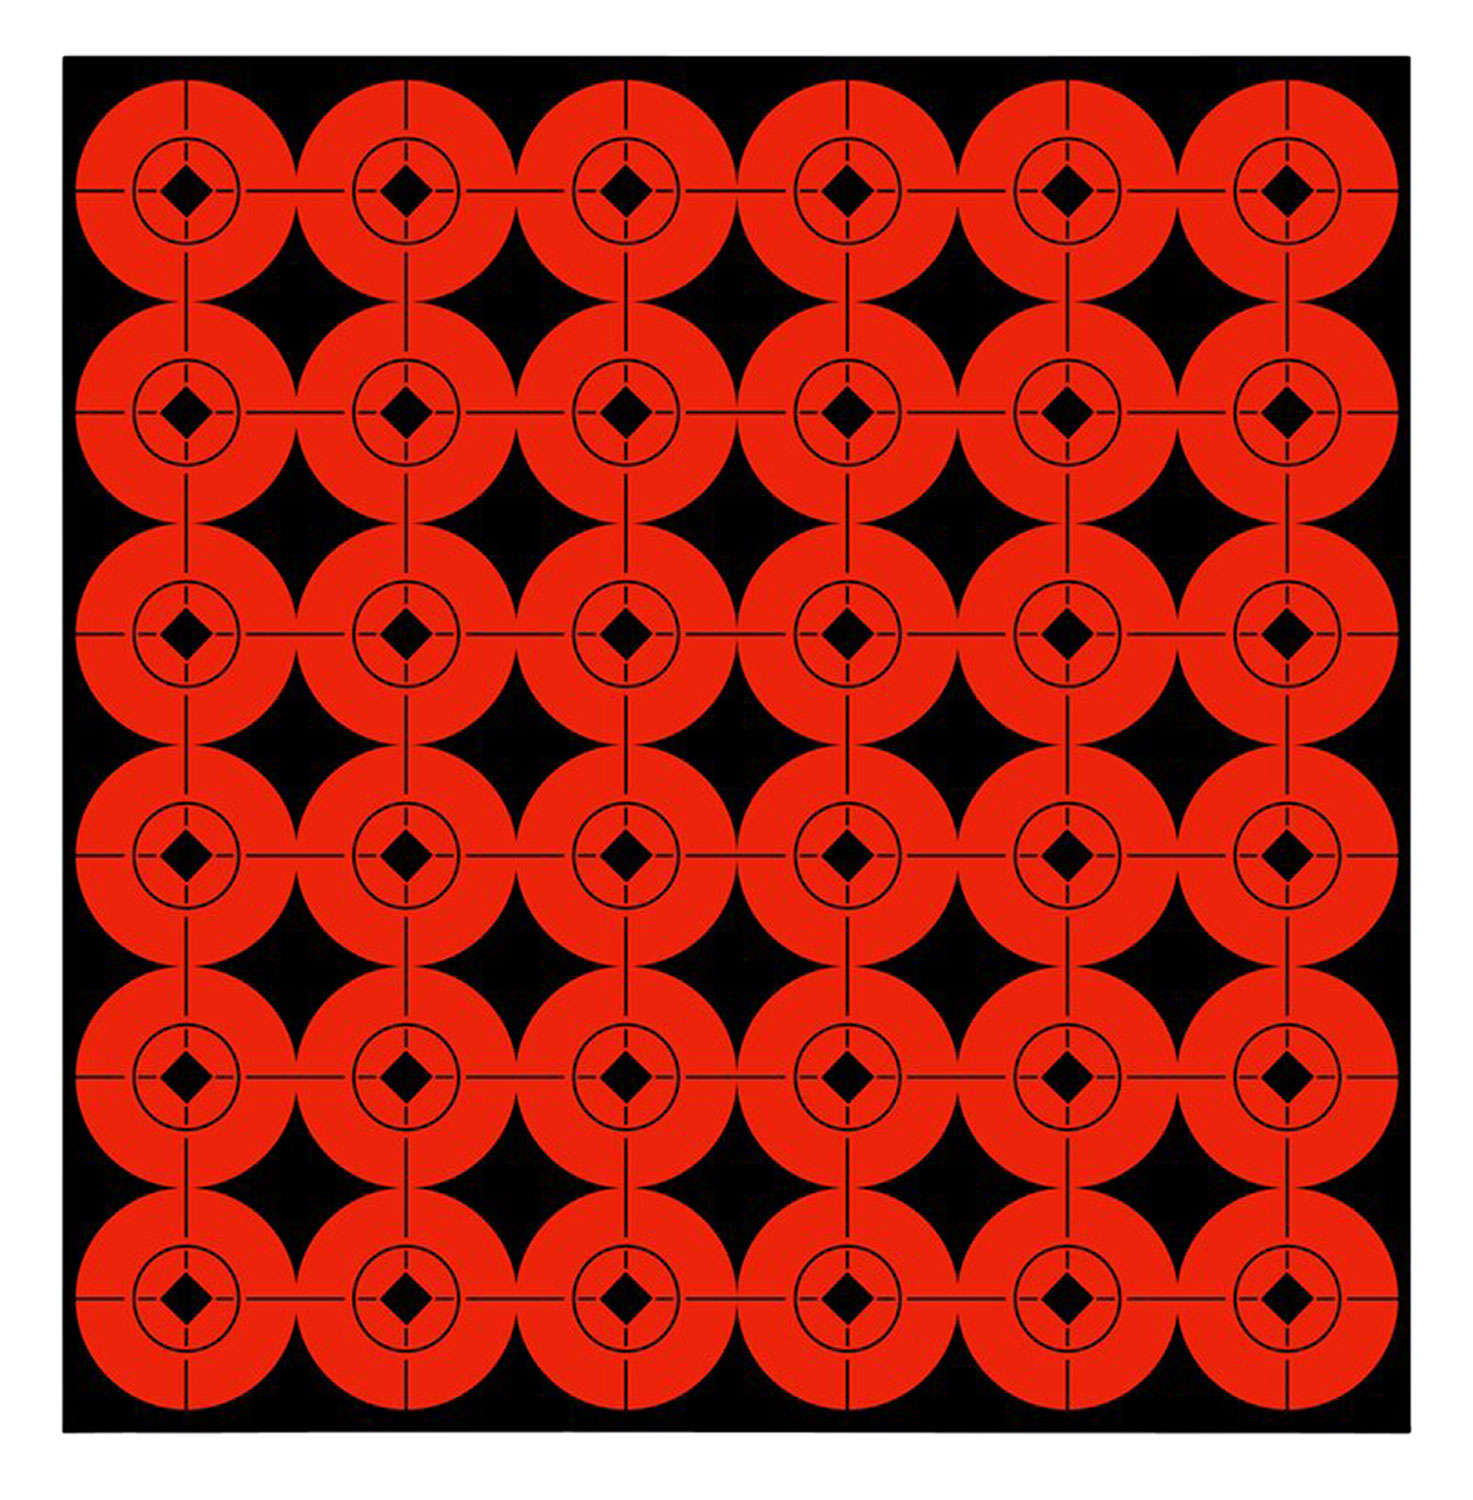 Birchwood Casey 33903 Target Spots Self-Sticking 30 Pack